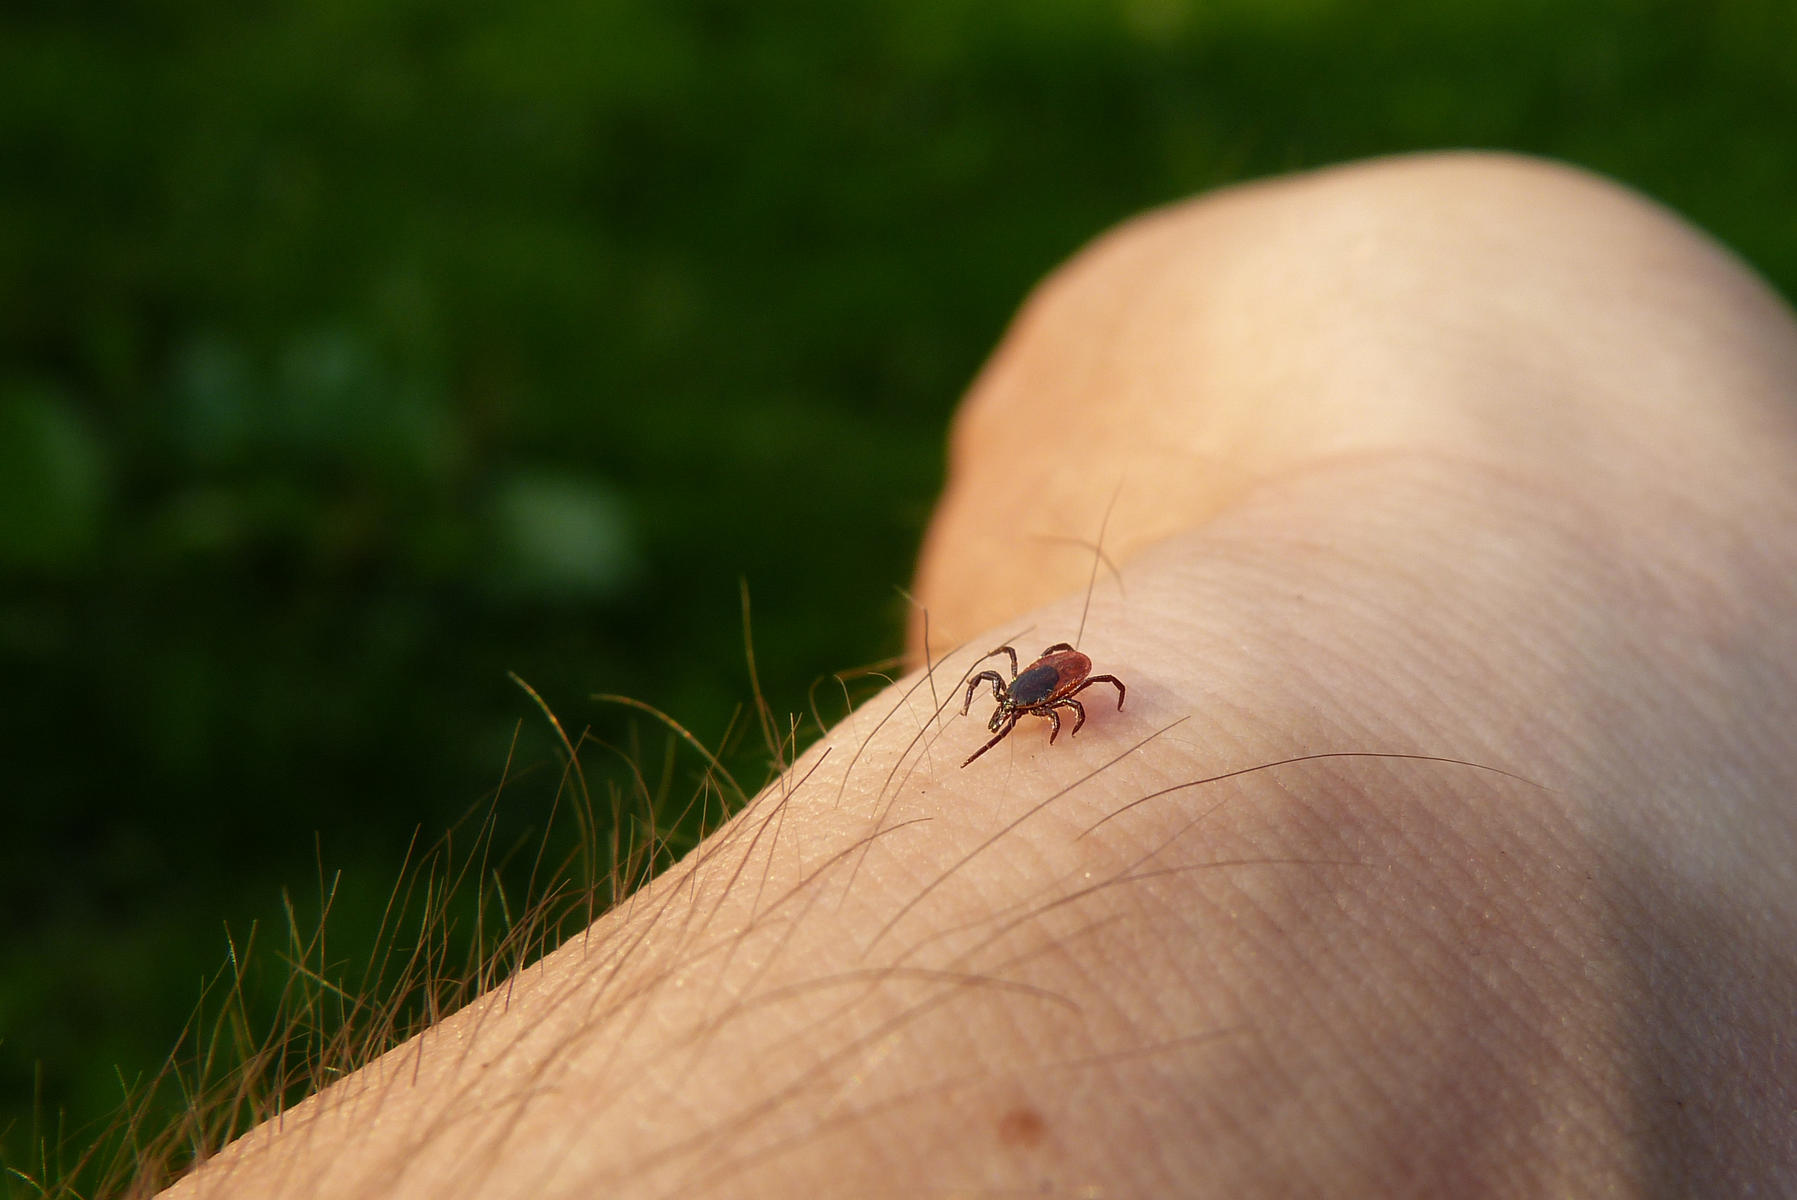 Tick on Skin of Person's Arm